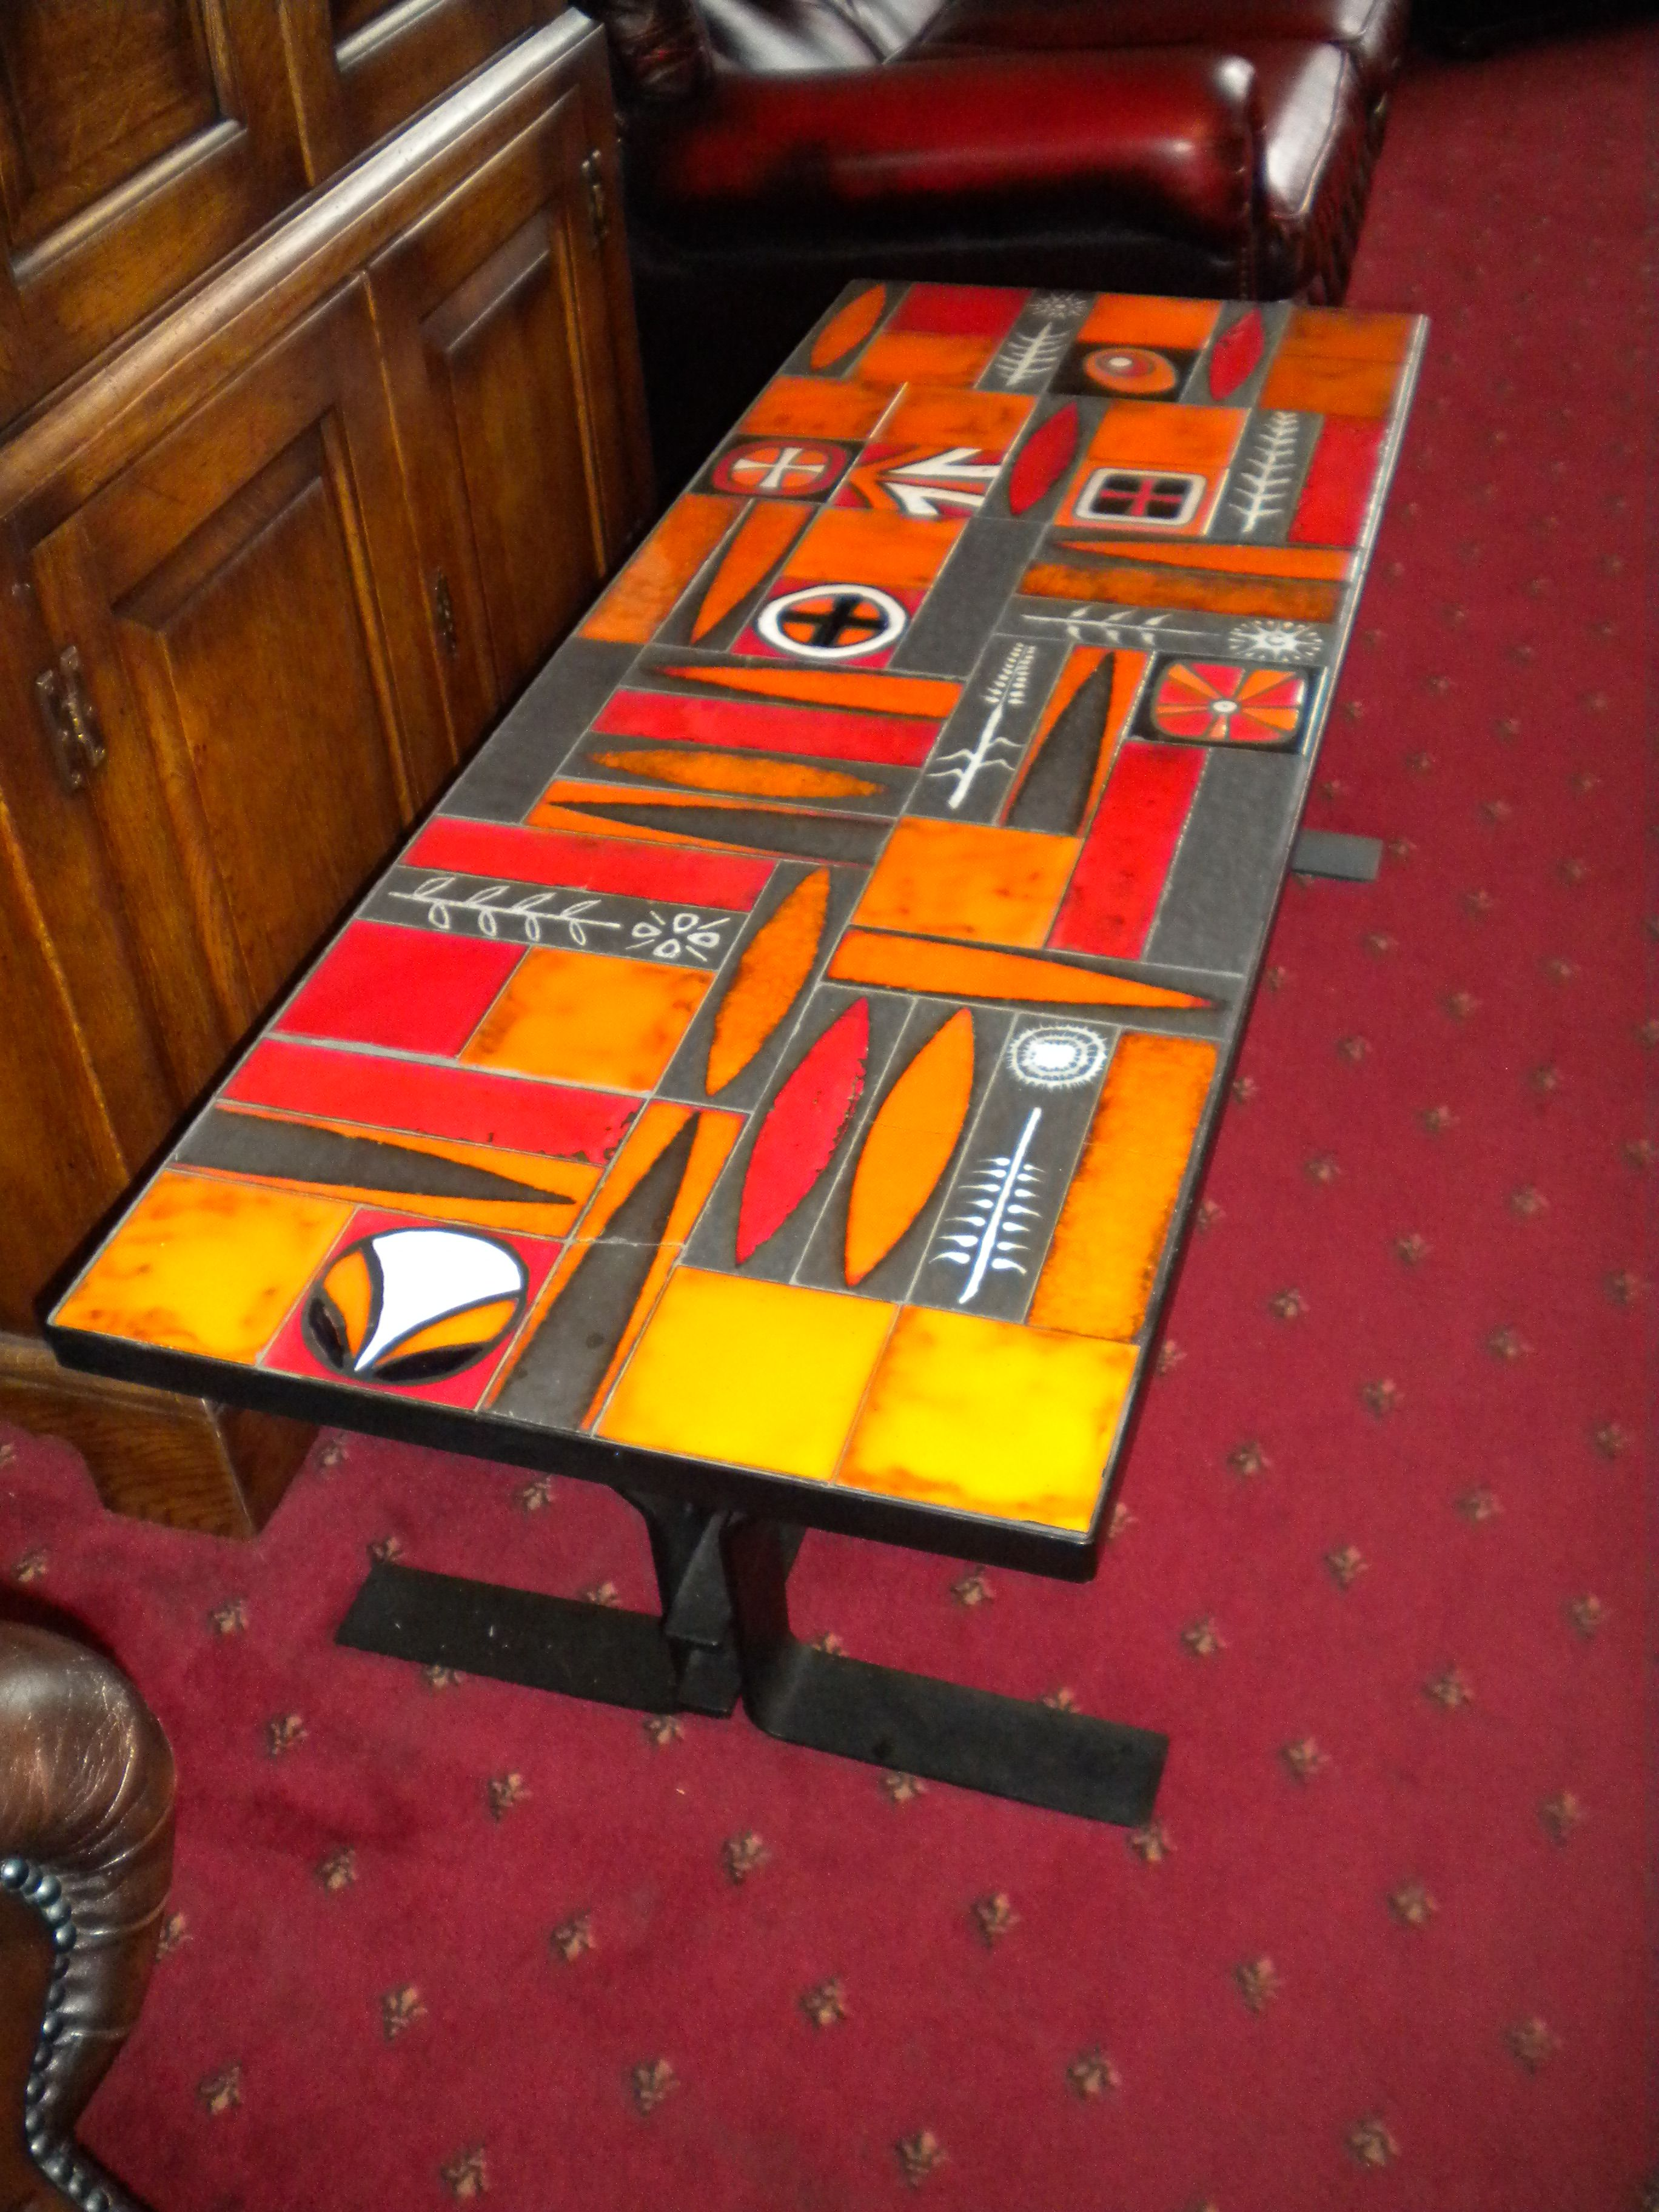 Vintageretro tiled coffee table those were the days pinterest vintageretro tiled coffee table dailygadgetfo Gallery